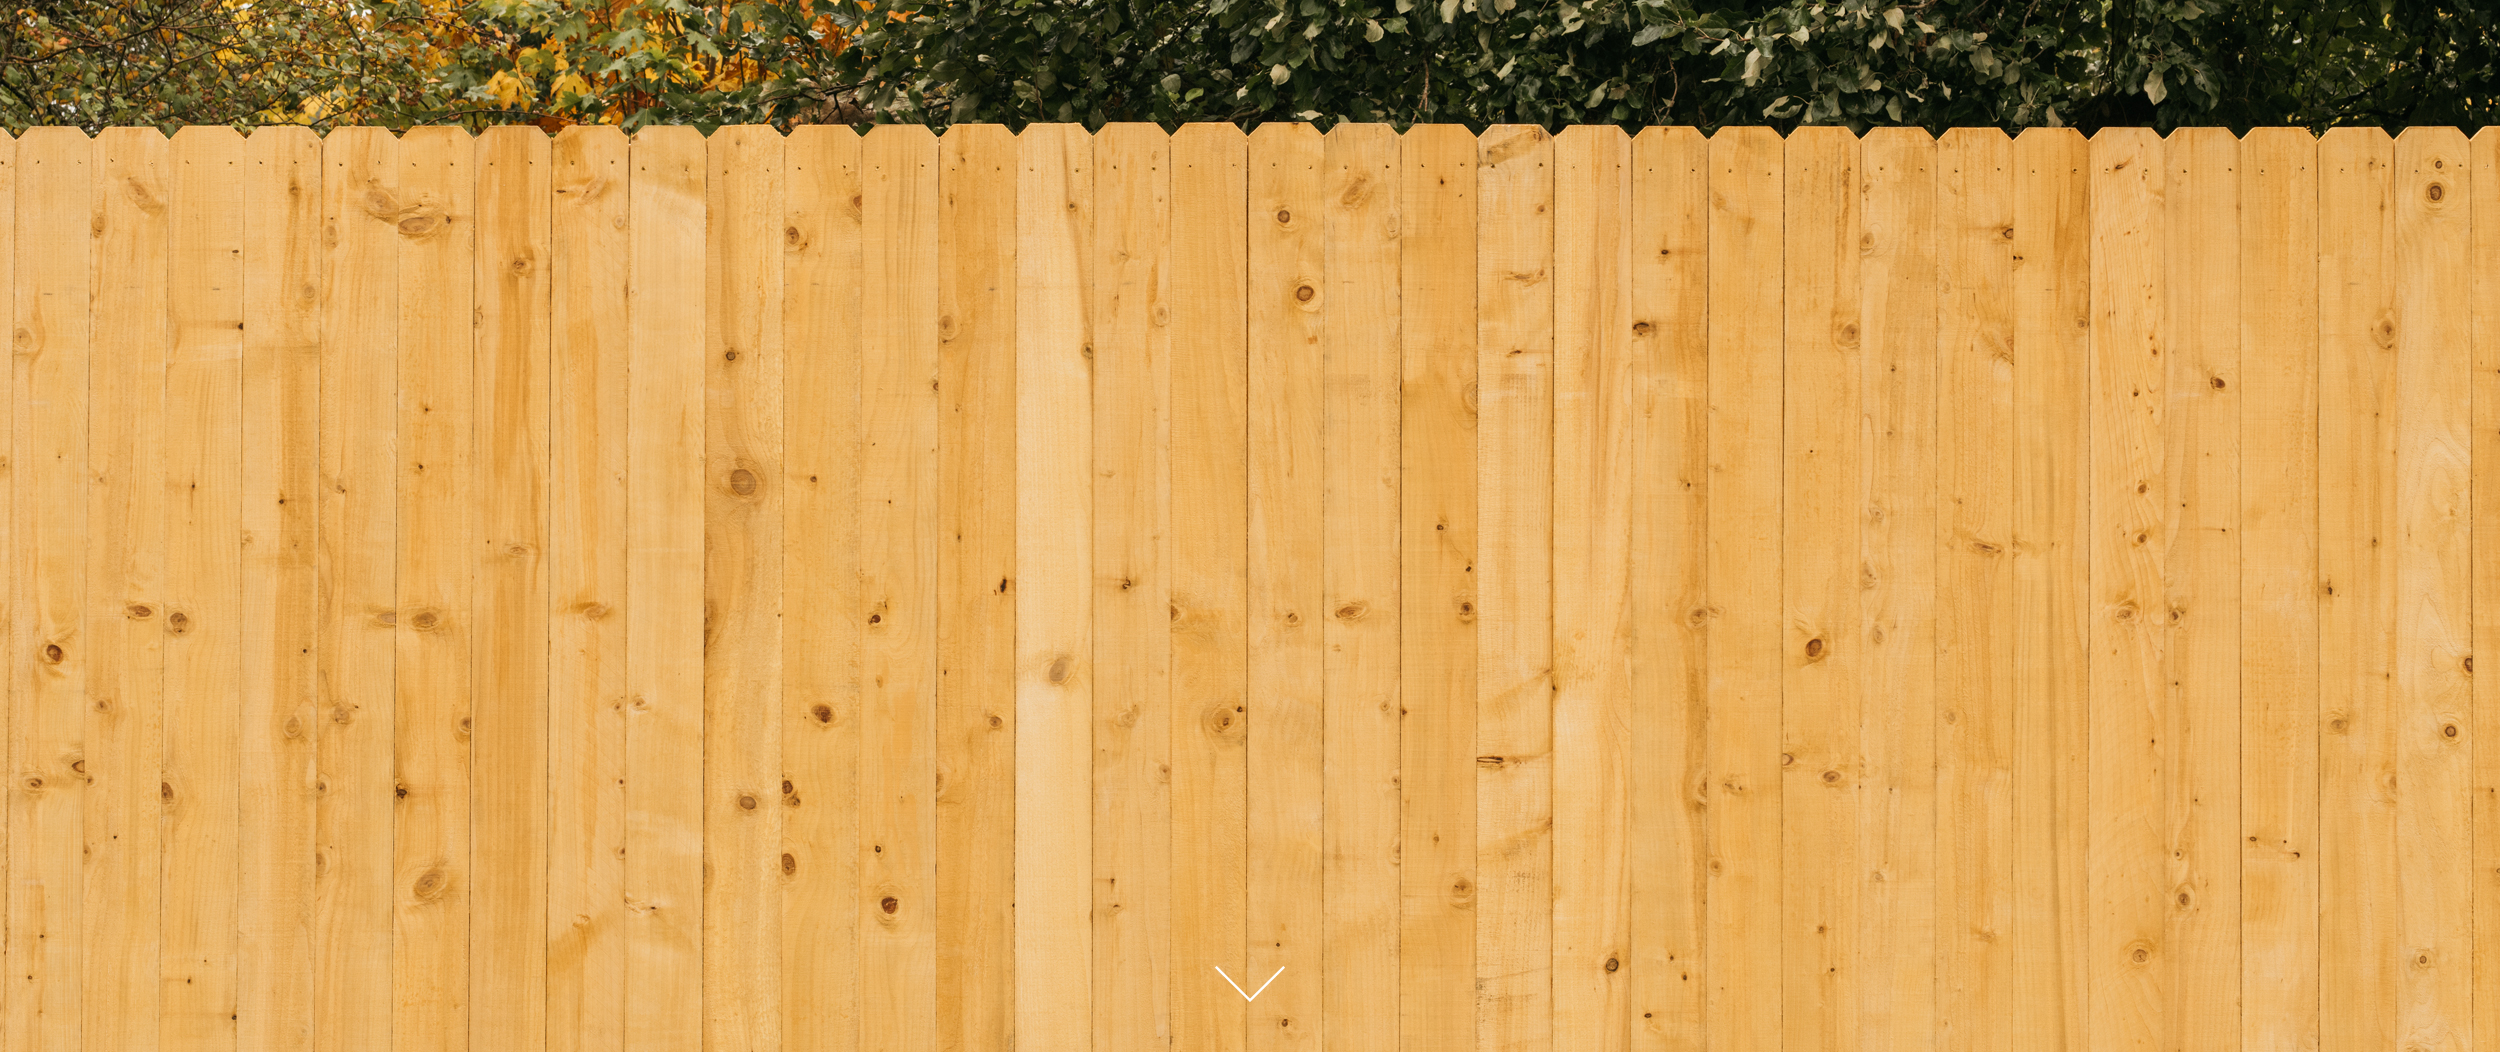 RIGHTWOOD - Stained RightWood fencing for the price conscious homeowner.